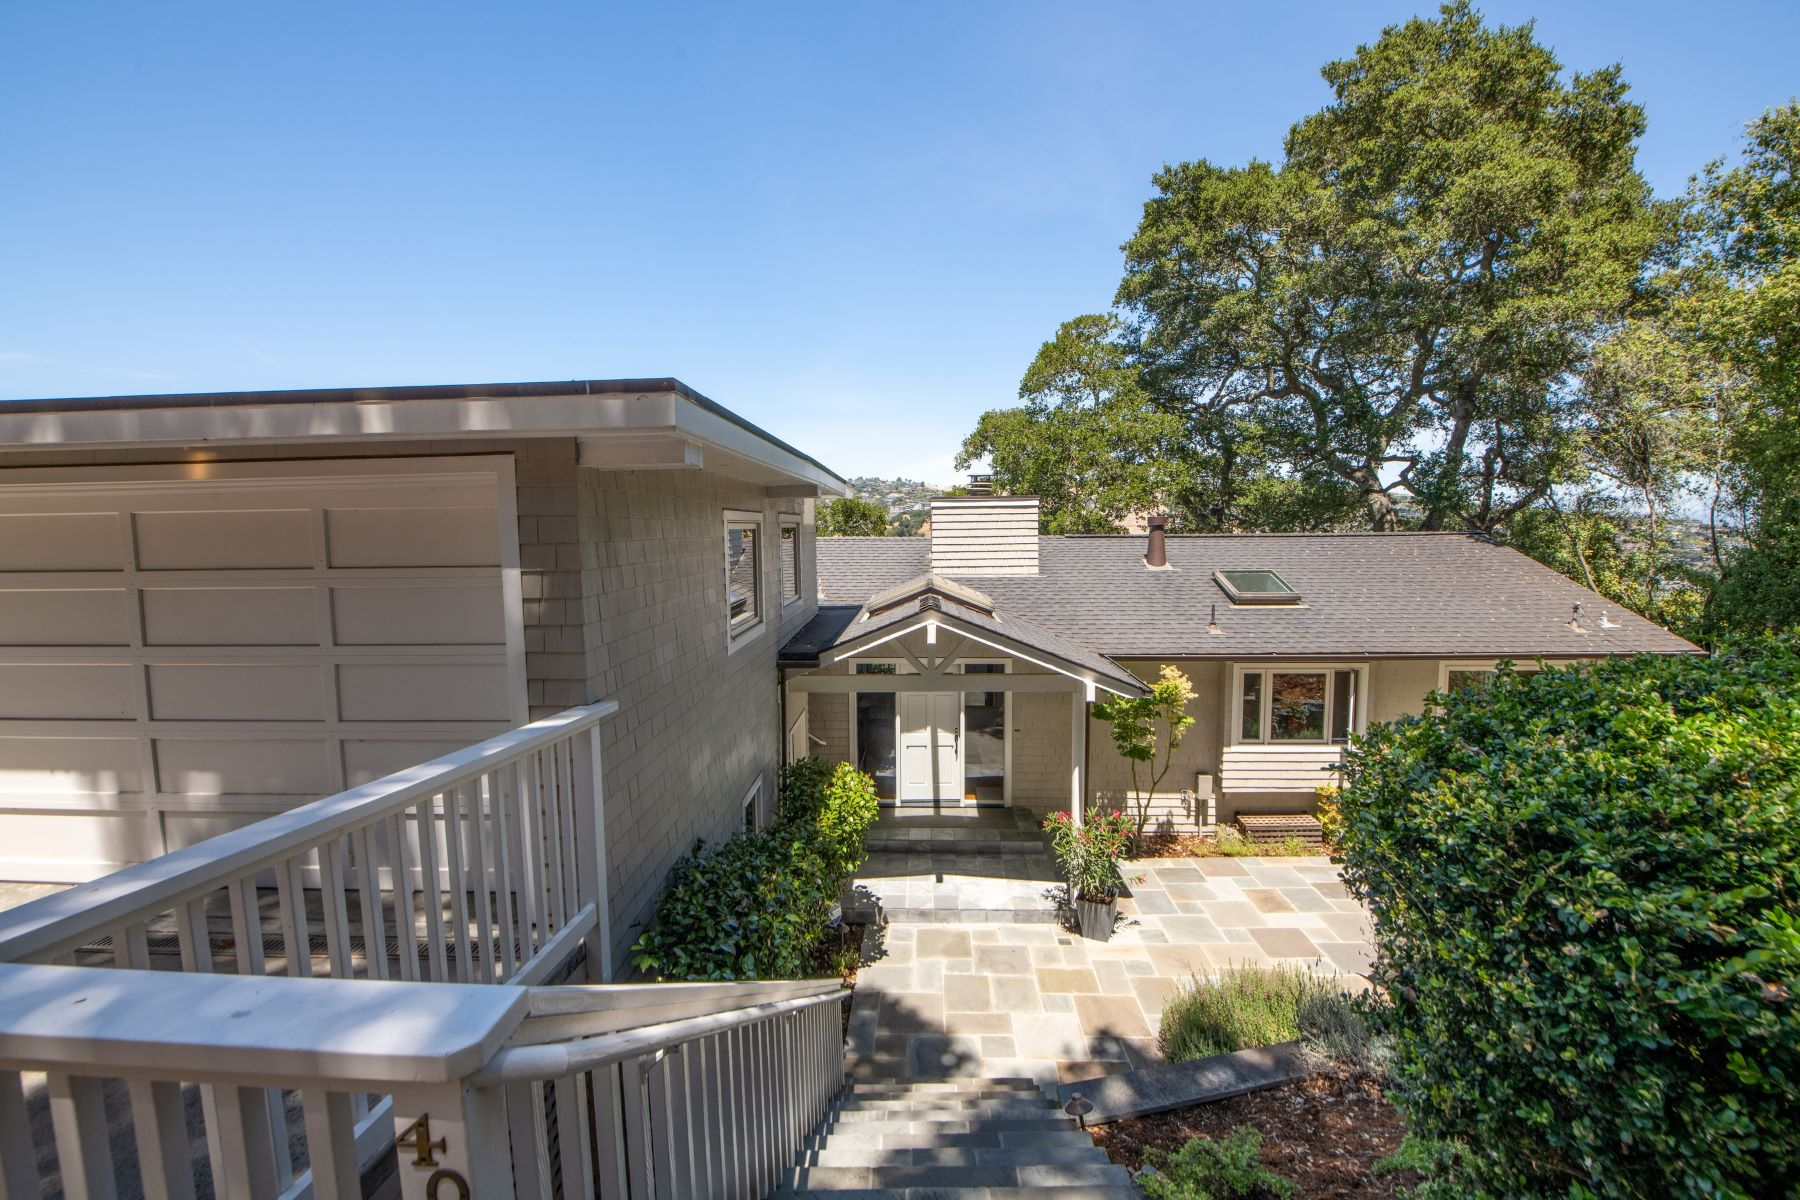 Property for Sale at Totally Updated Island Charmer 40 Madrona Avenue Belvedere, California 94920 United States